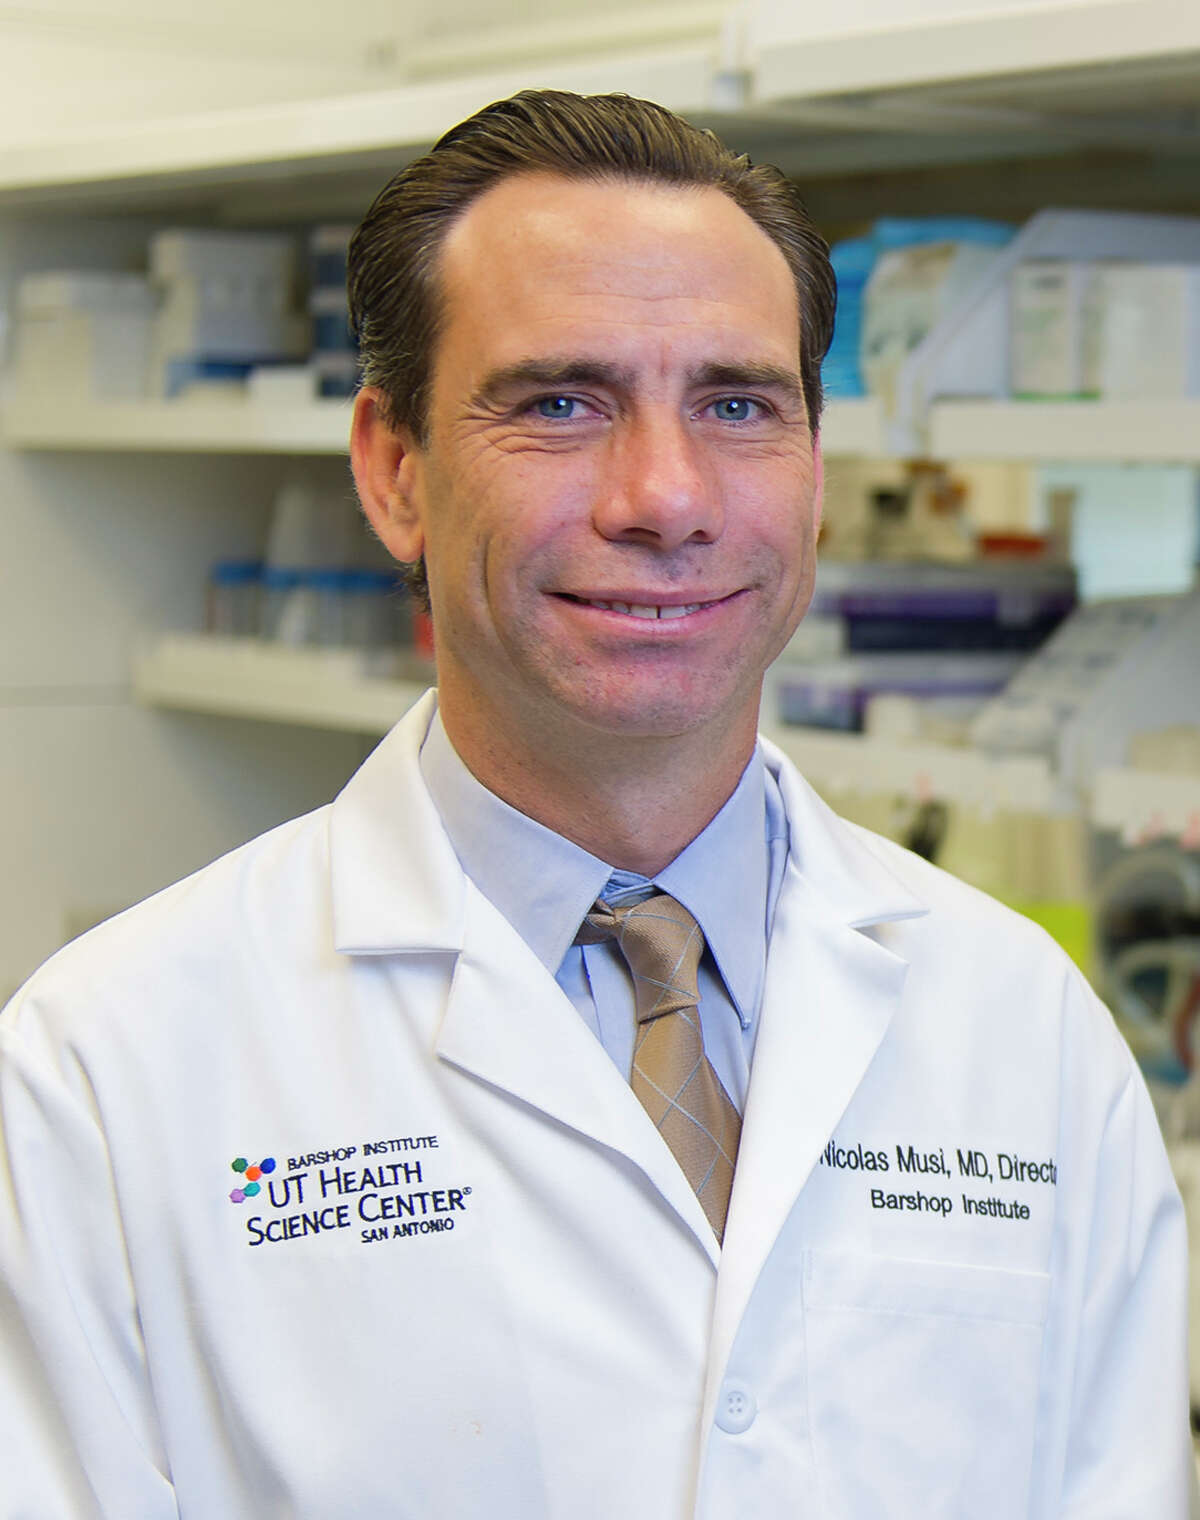 Dr. Nicolas Musi is director of the Barshop Institute for Longevity and Aging Studies at the University of Texas Health Science Center in San Antonio.